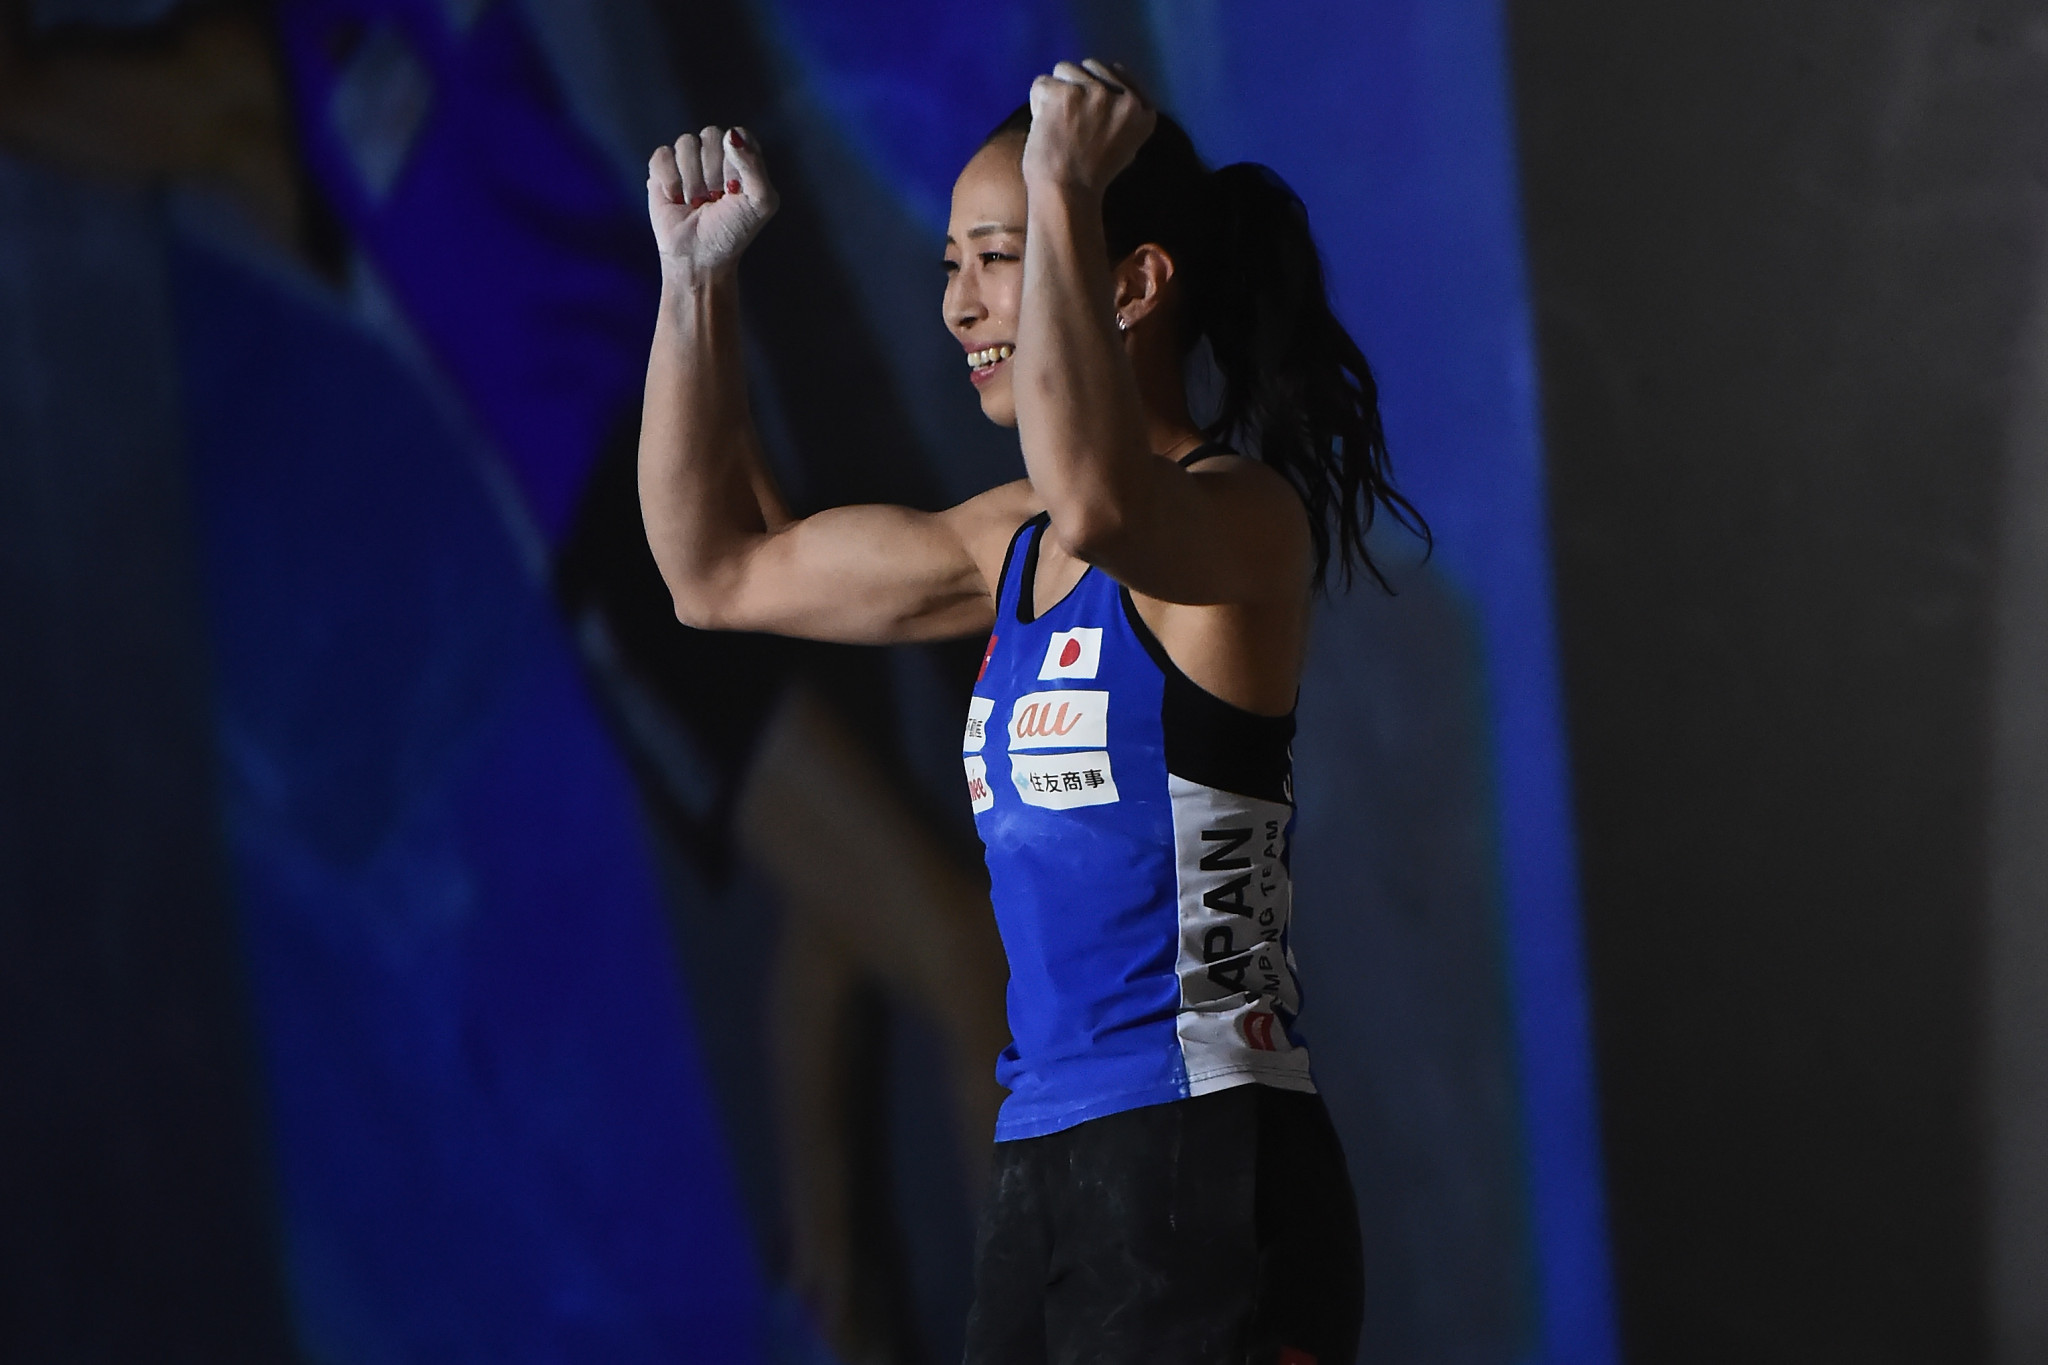 Hosts secure one-two in women's bouldering on final day of IFSC Climbing World Cup in Hachioji